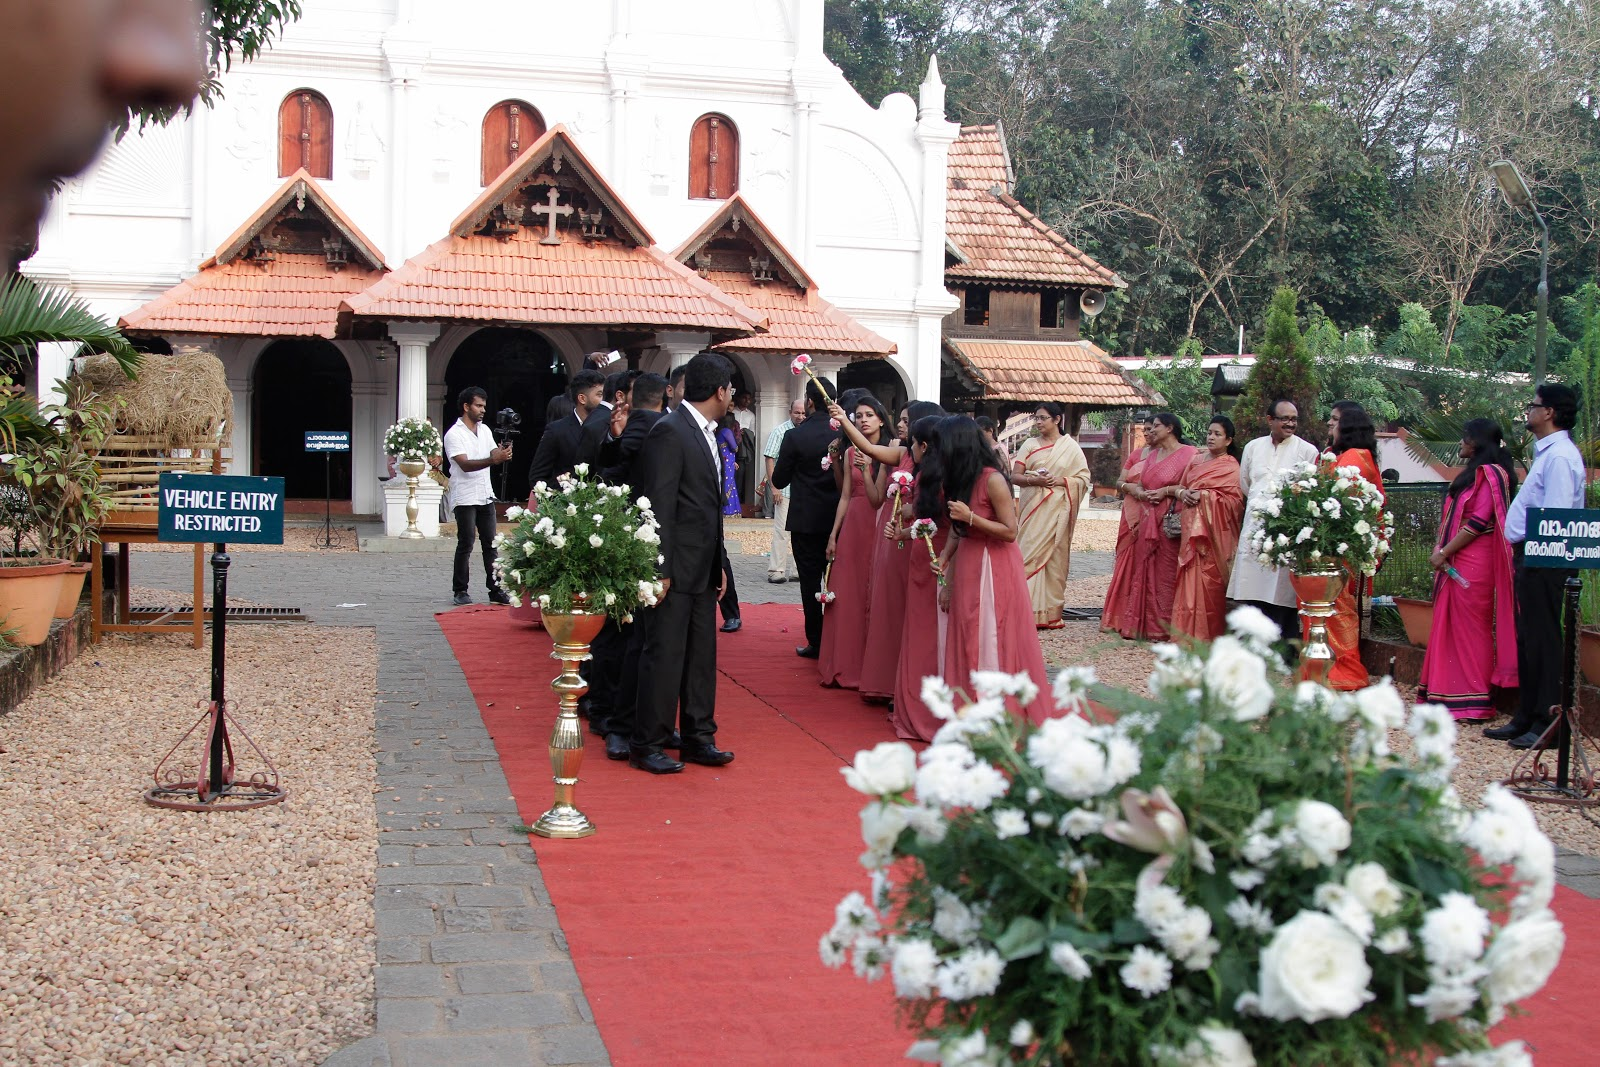 wedding planner pathanamthitta +k,  wedding planner pathanamthitta + l,  wedding planner pathanamthitta + m,  wedding planner pathanamthitta + n,  wedding planner pathanamthitta + o